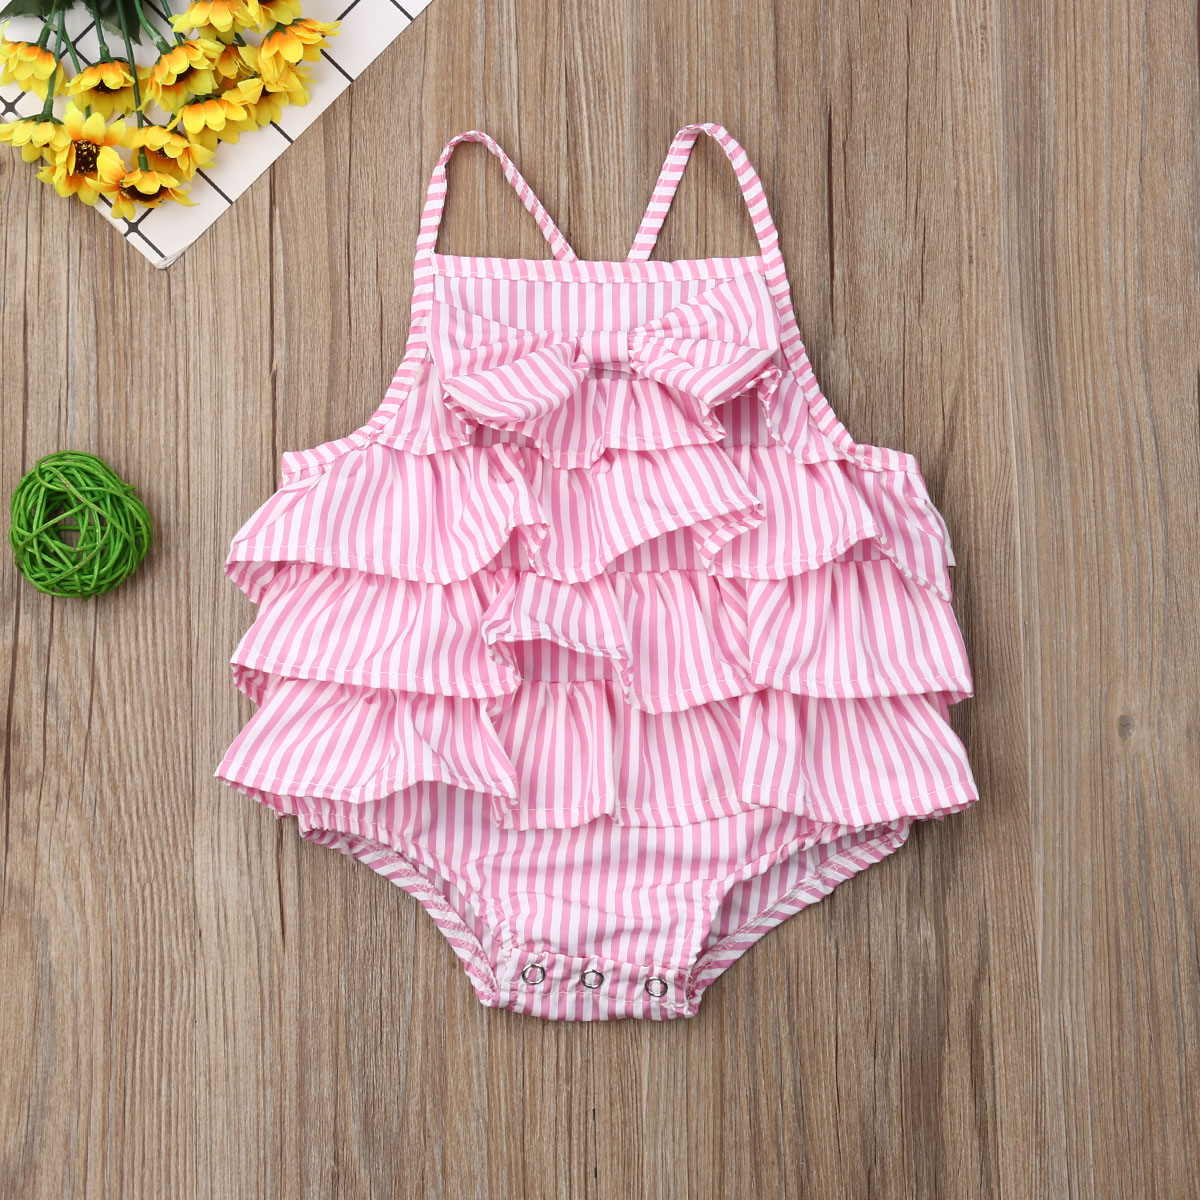 0 18M Cute Newborn Baby Girls Striped Bowknot Bodysuit Sleeveless Ruffle Backless Strappy Sunsuit Princess Baby Summer Clothes in Bodysuits from Mother Kids